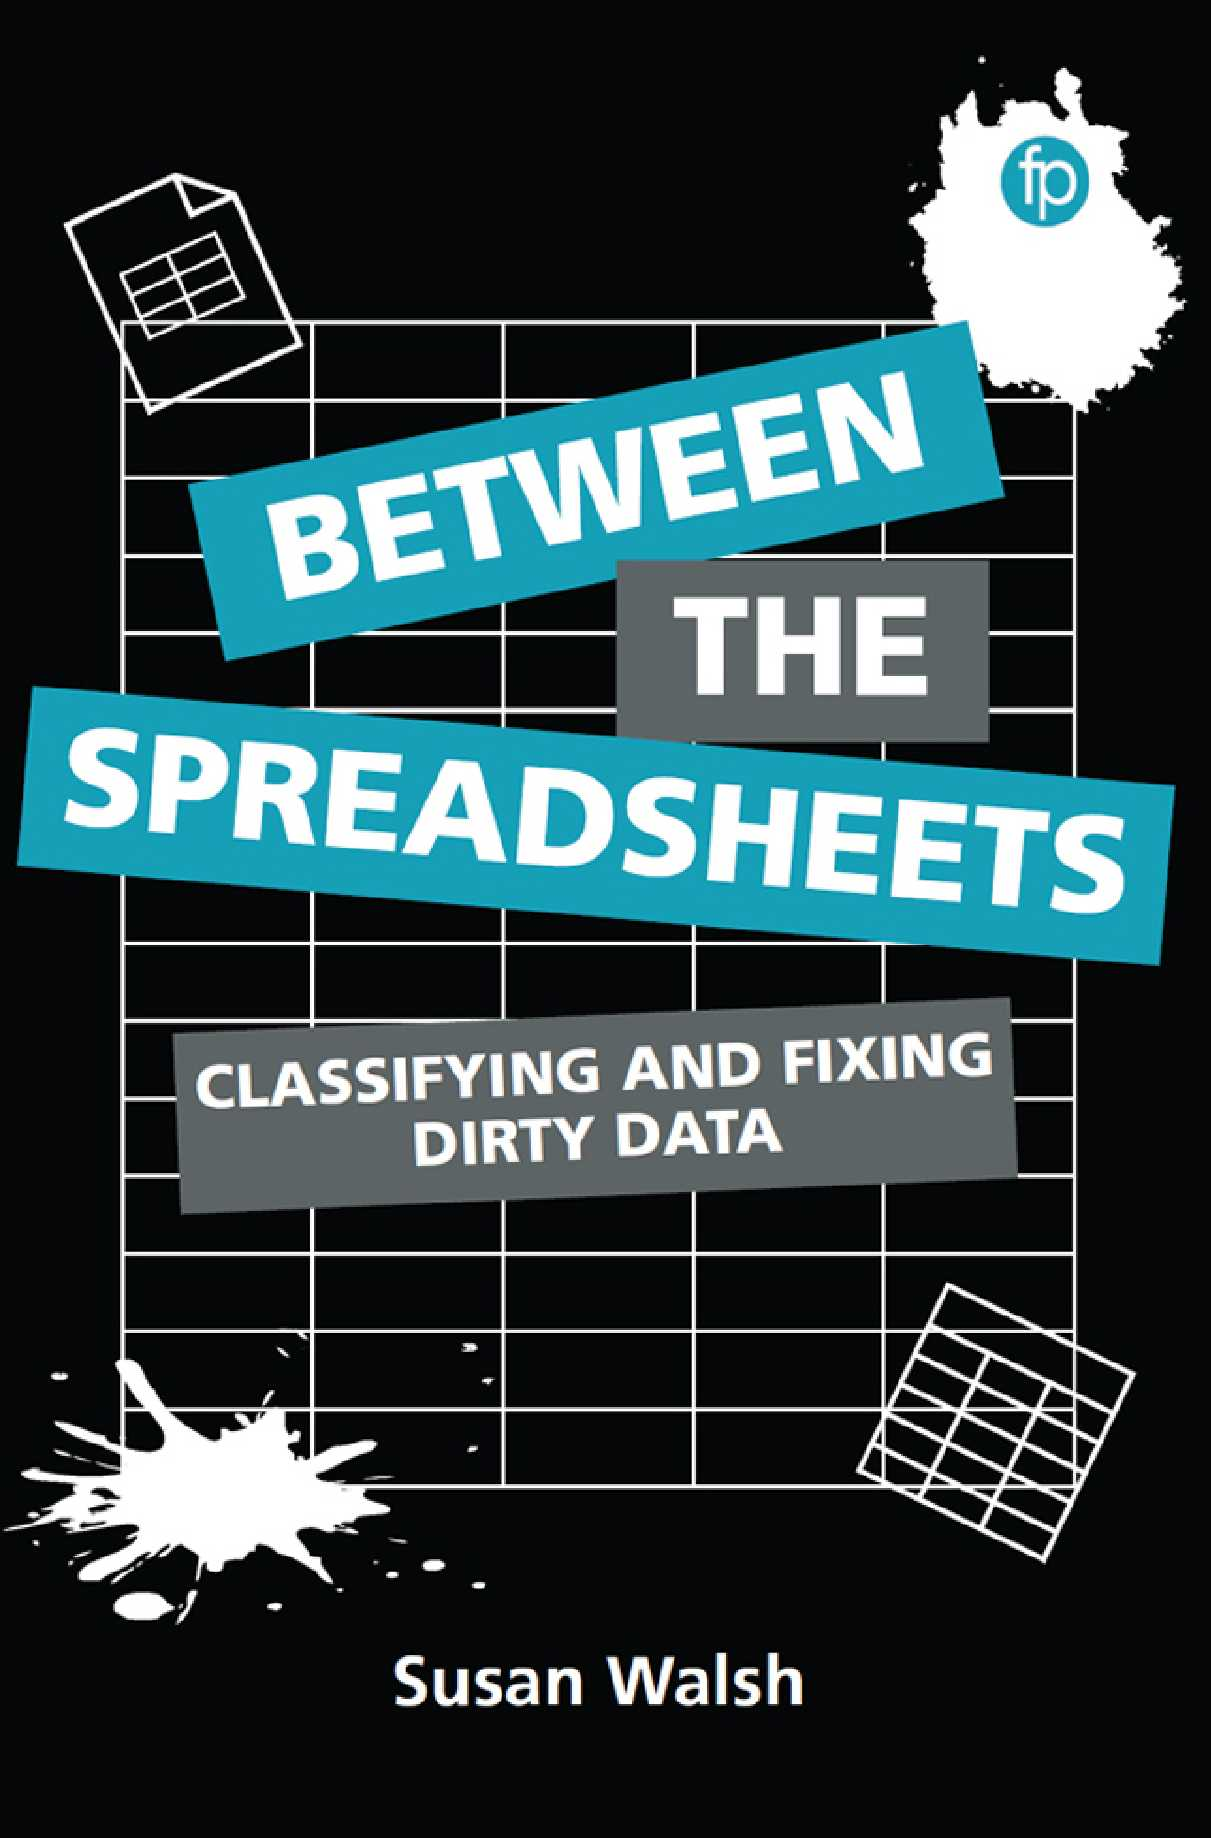 Between the Spreadsheets: Classifying and Fixing Dirty Data